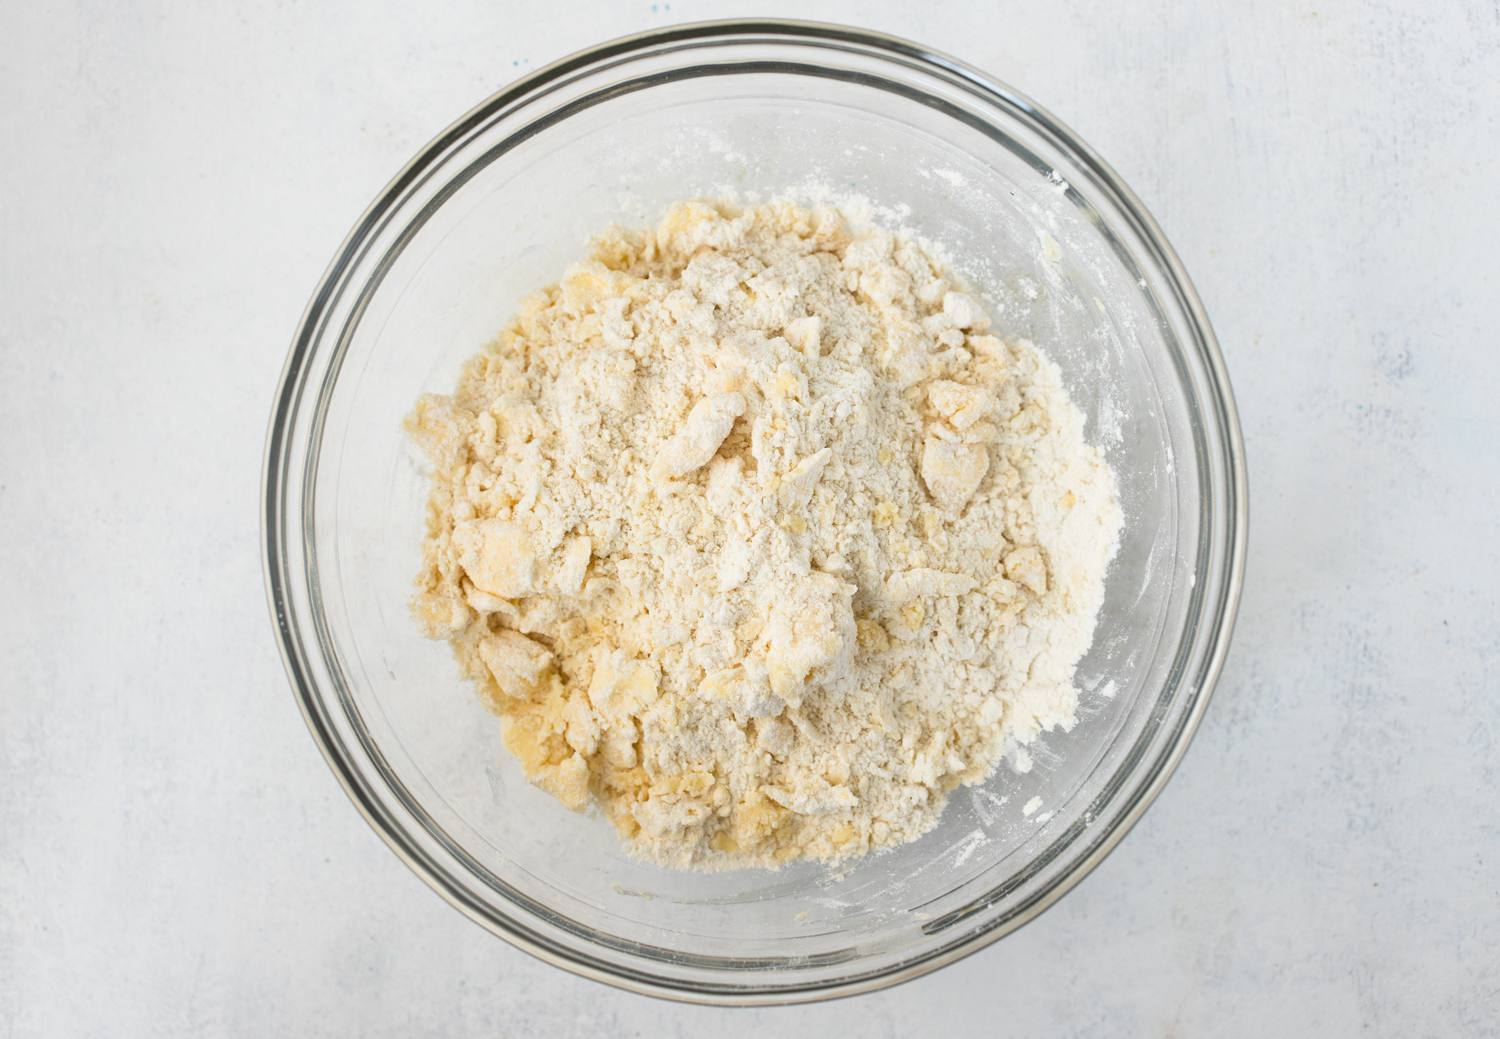 Butter is rubbed into the flour mixture